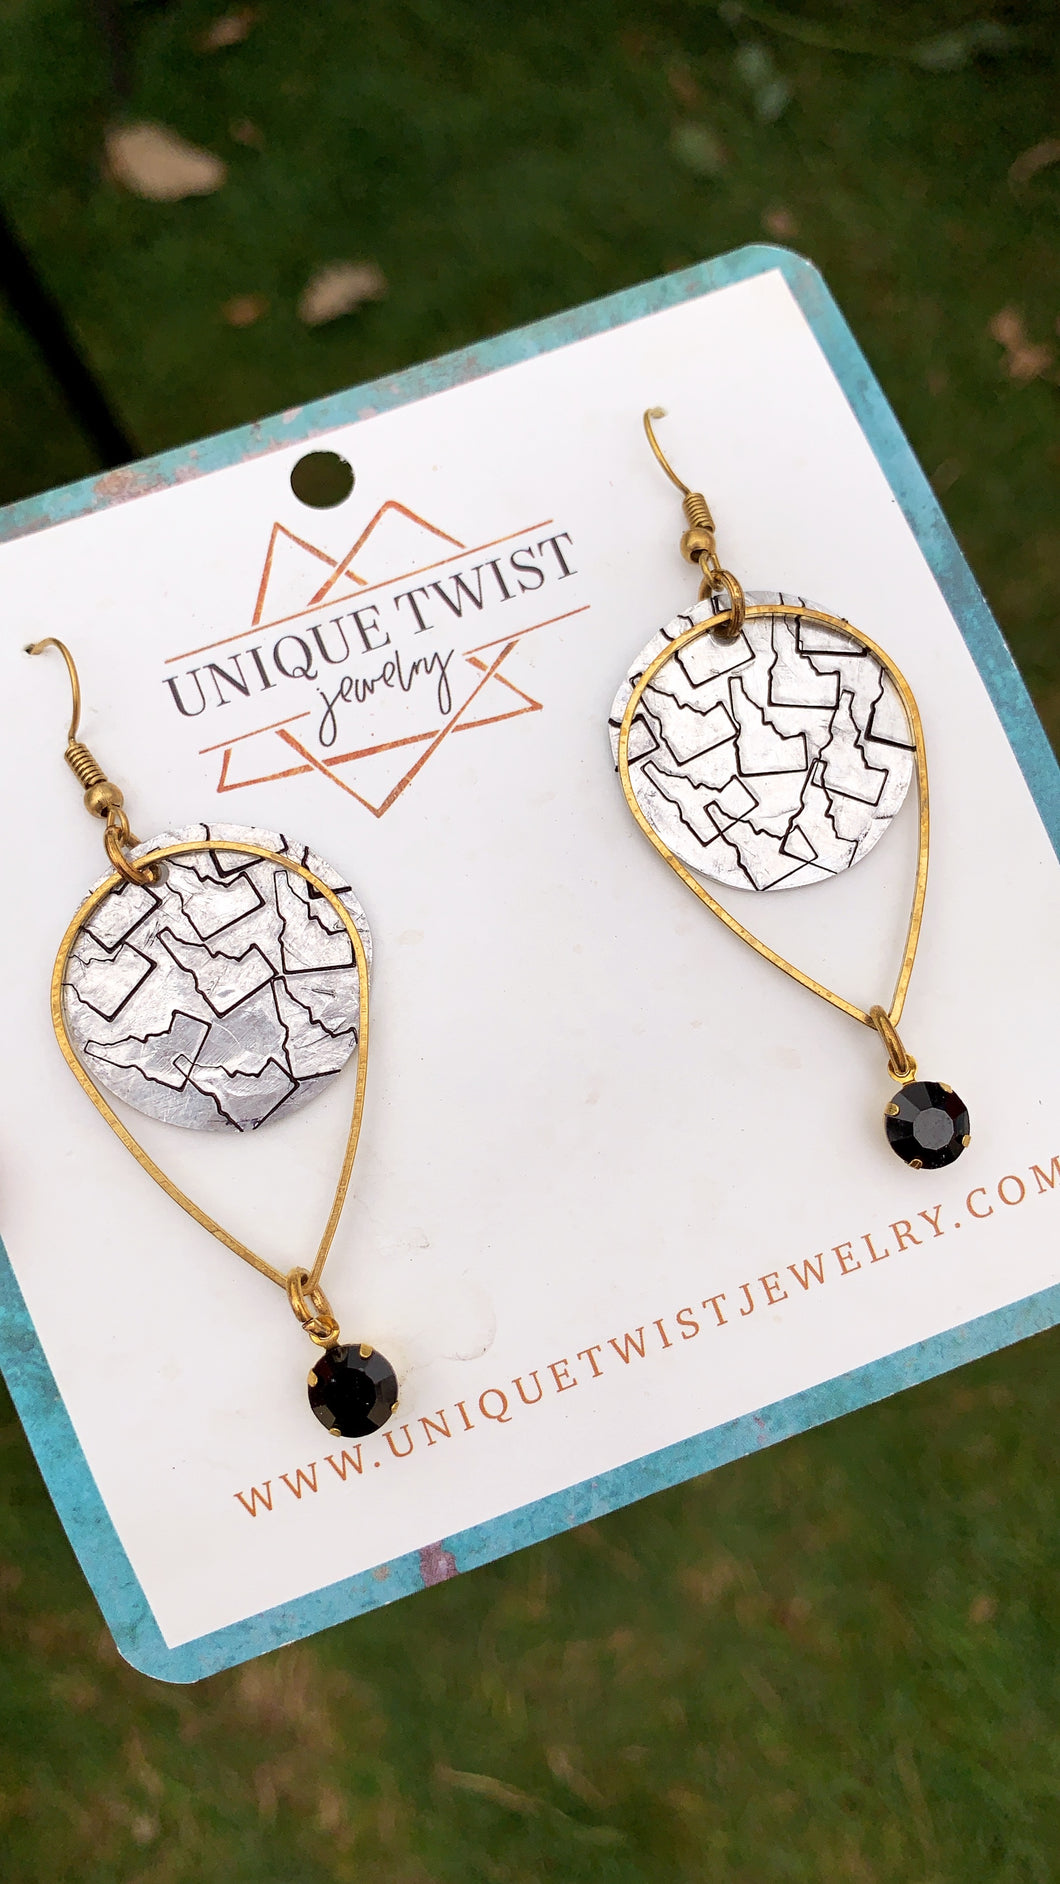 Idaho Way Hand-Stamped Earrings. Handmade jewelry by Unique Twist Jewelry.